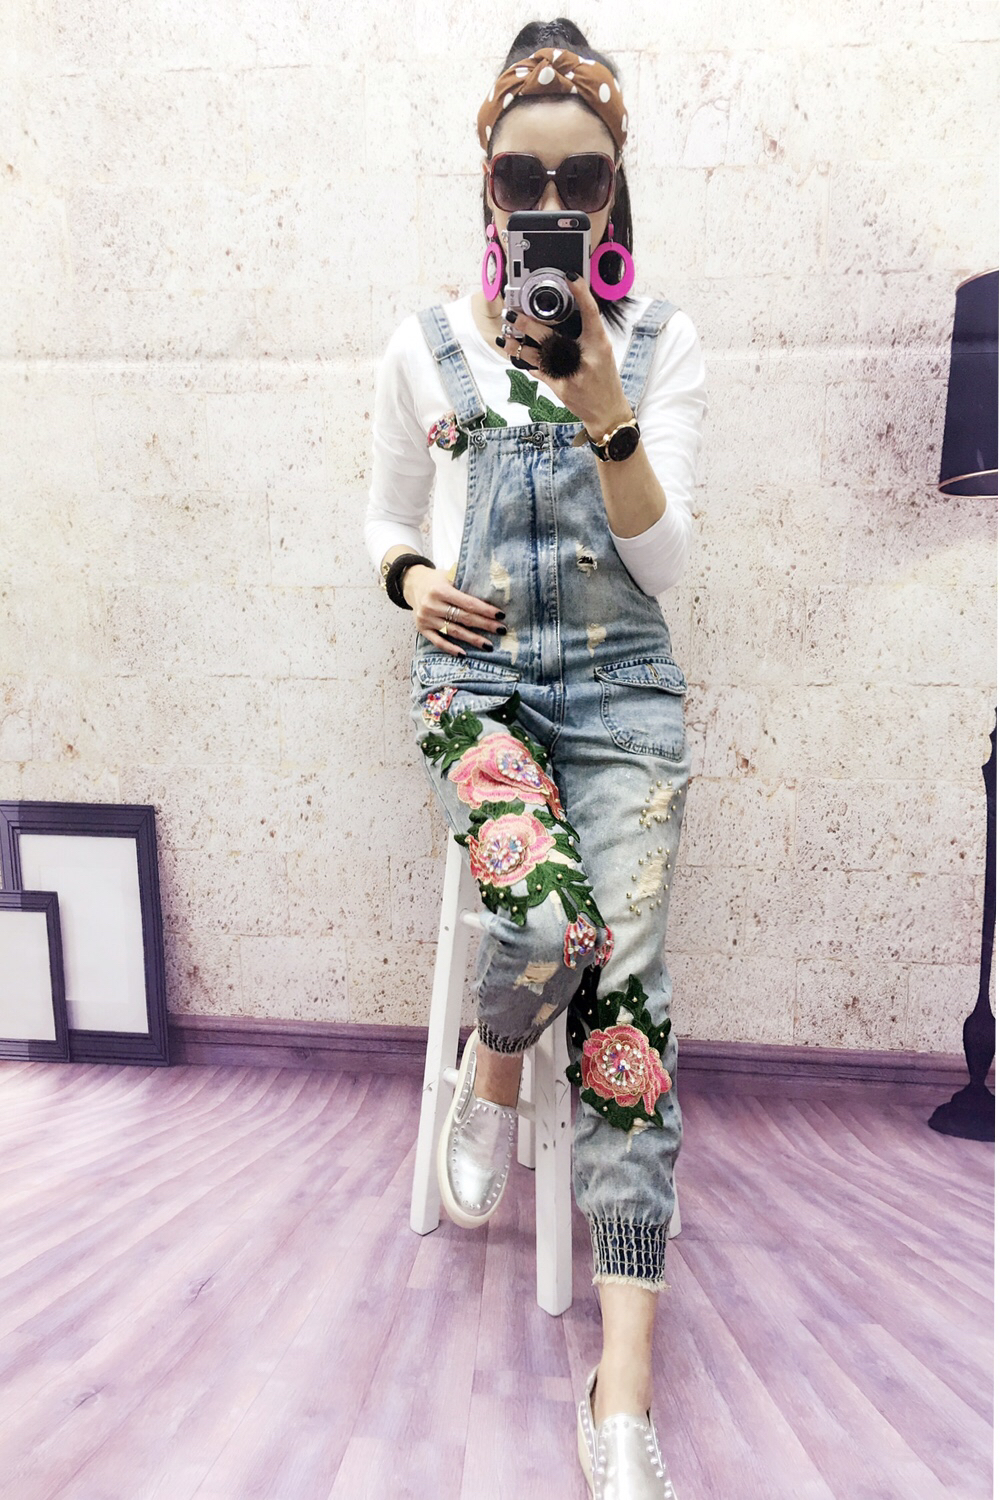 2017 European New Fashion Flower Embroidery Stitch Sequins Pearl Decoration Worn Out Overalls Rompers Women Jeans faux pearl decoration jeans